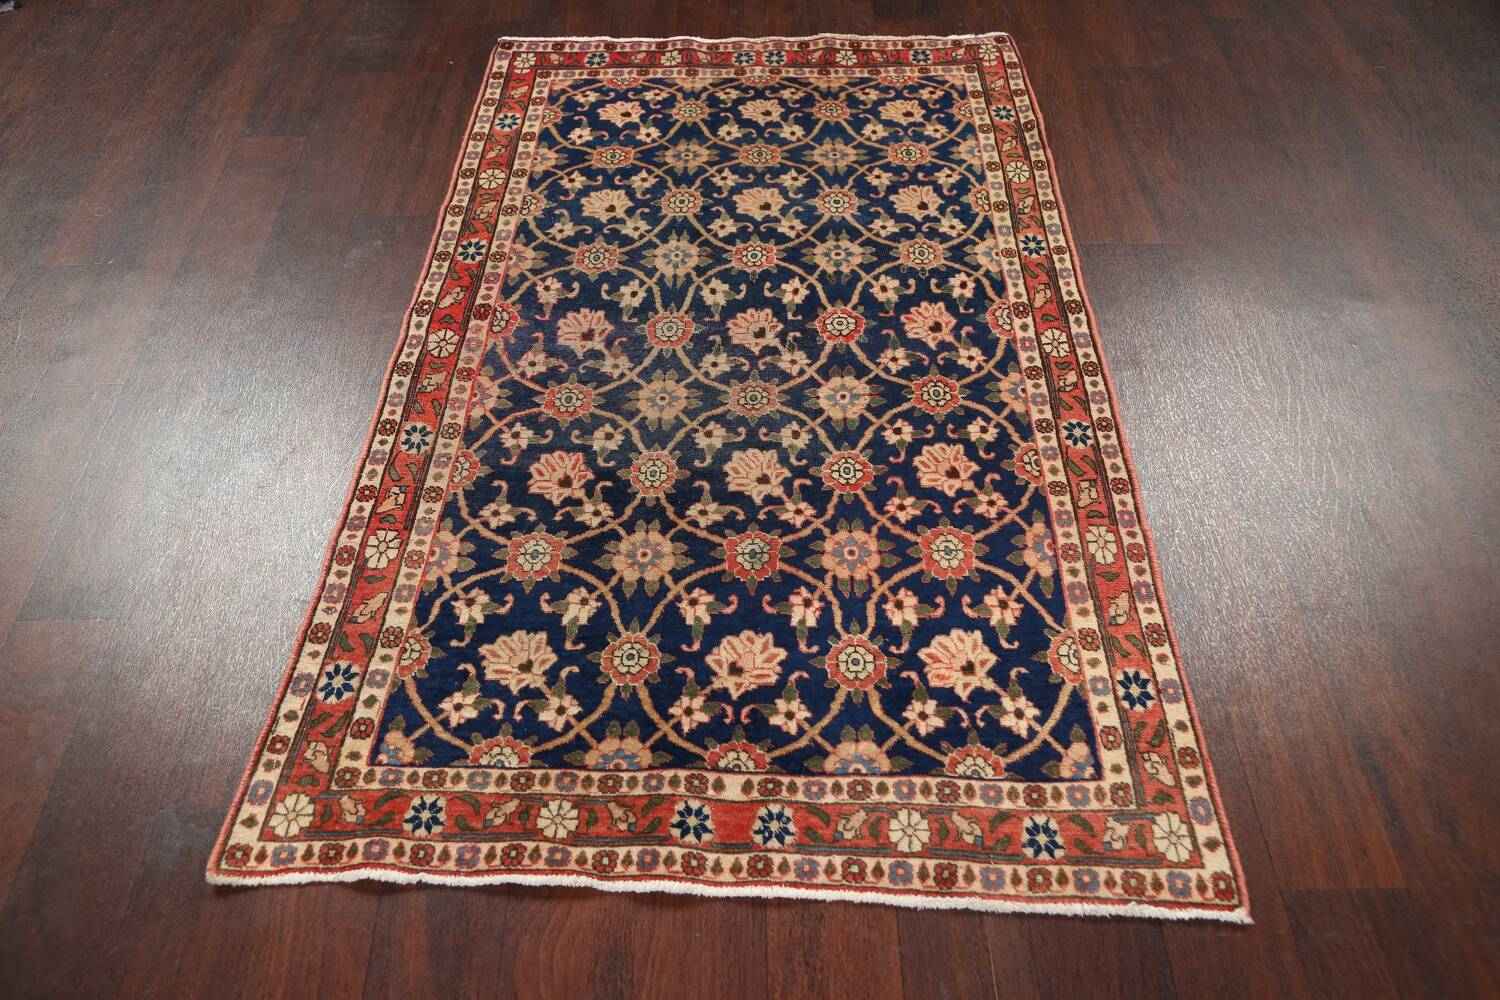 Antique Vegetable Dye Isfahan Persian Area Rug 3x5 image 14